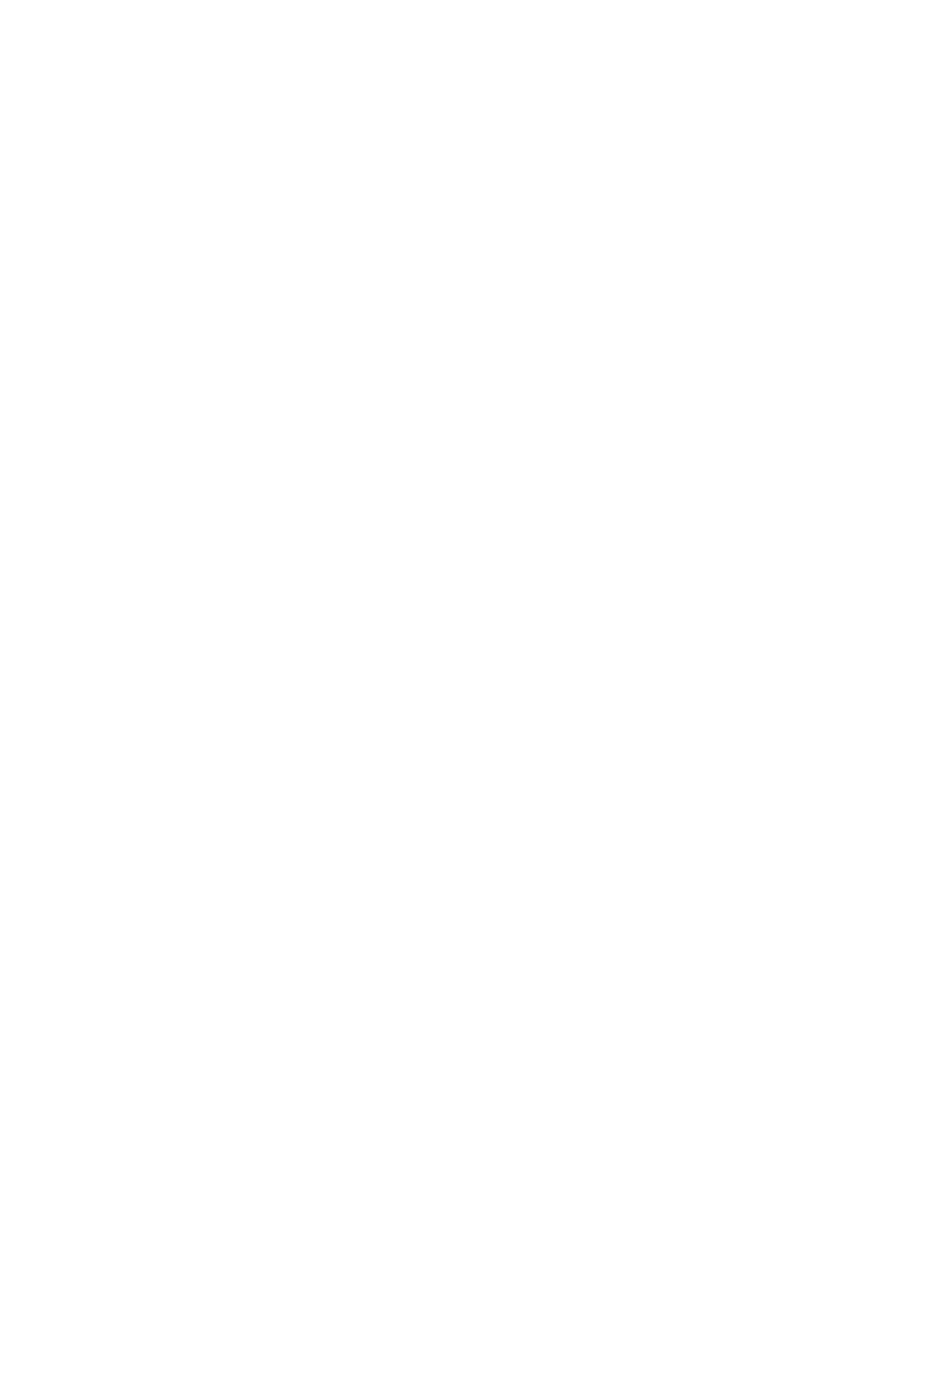 """Stephen Elliott - """"Vain is the help of man"""" [electronic resource]: a sermon preached in Christ Church, Savannah, on Thursday, September 15, 1864, being the day of fasting, humiliation, and prayer, appointed by the governor of the state of Georgia"""